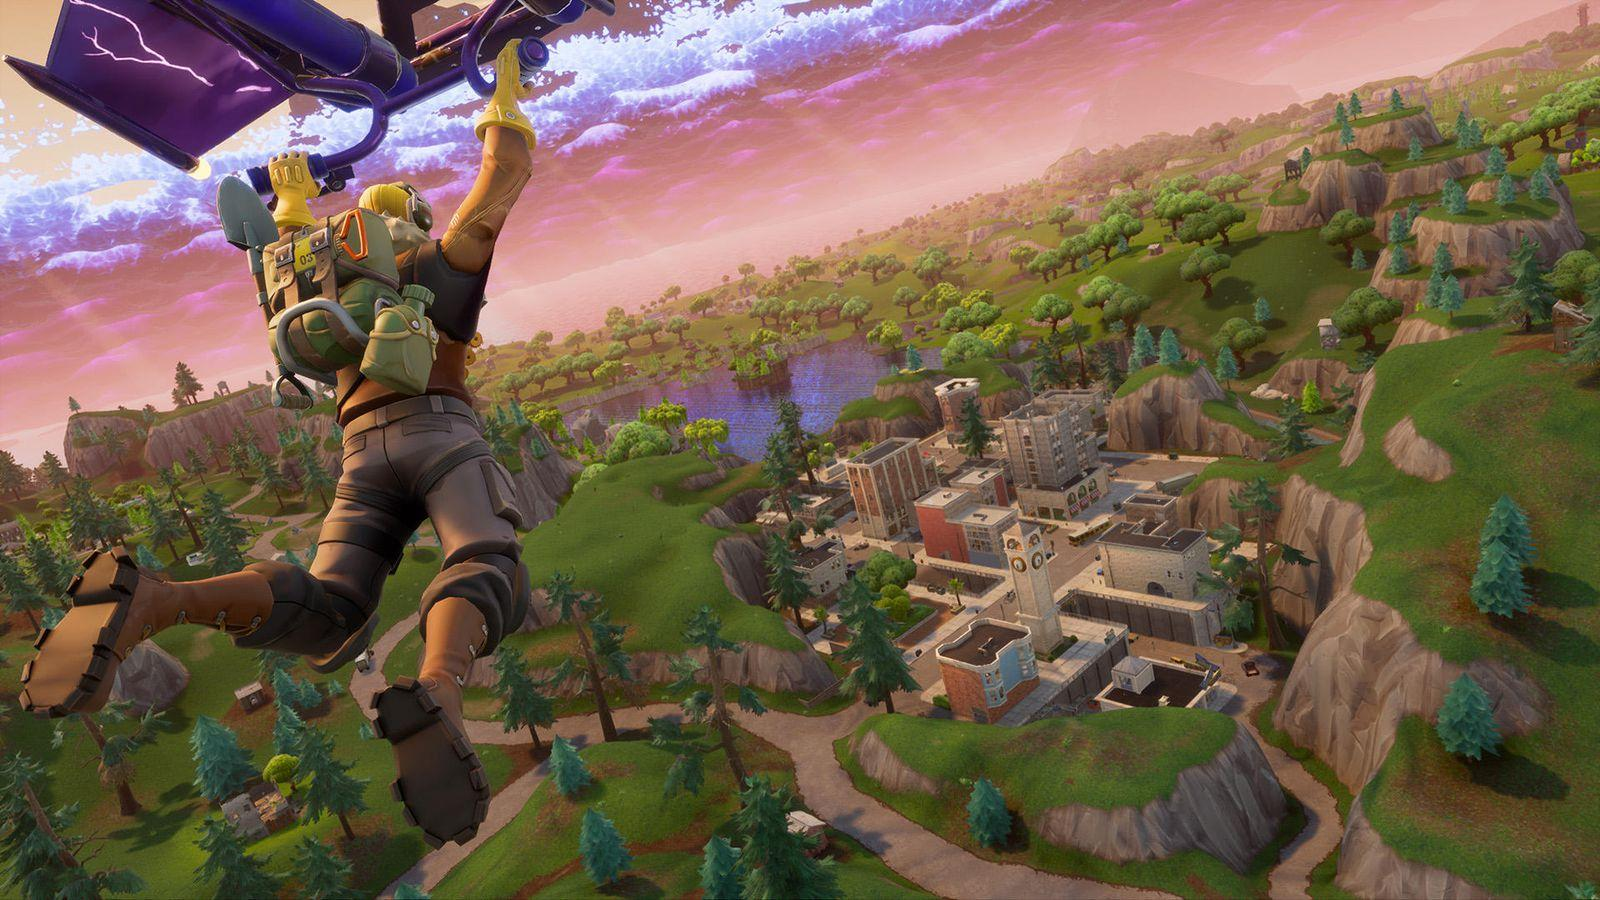 What Is The Security Flaw In Fortnite Fortnite Had A Security Vulnerability That Let Hackers Take Over Accounts Cnet